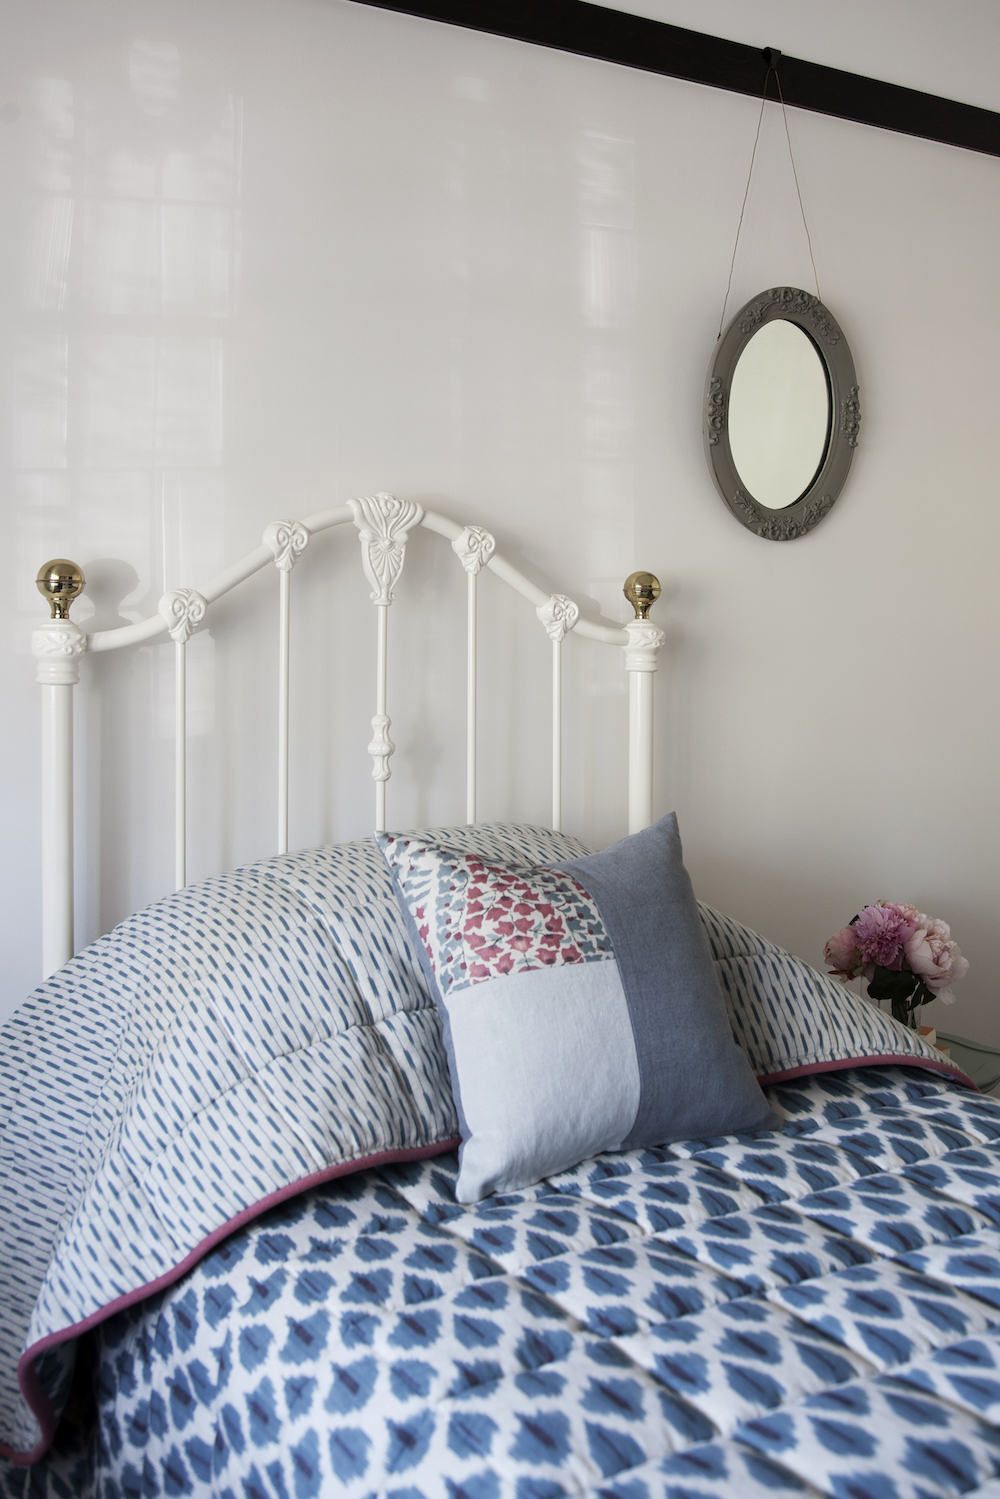 north-sydney-bedroom-by-kate-connors-interiors